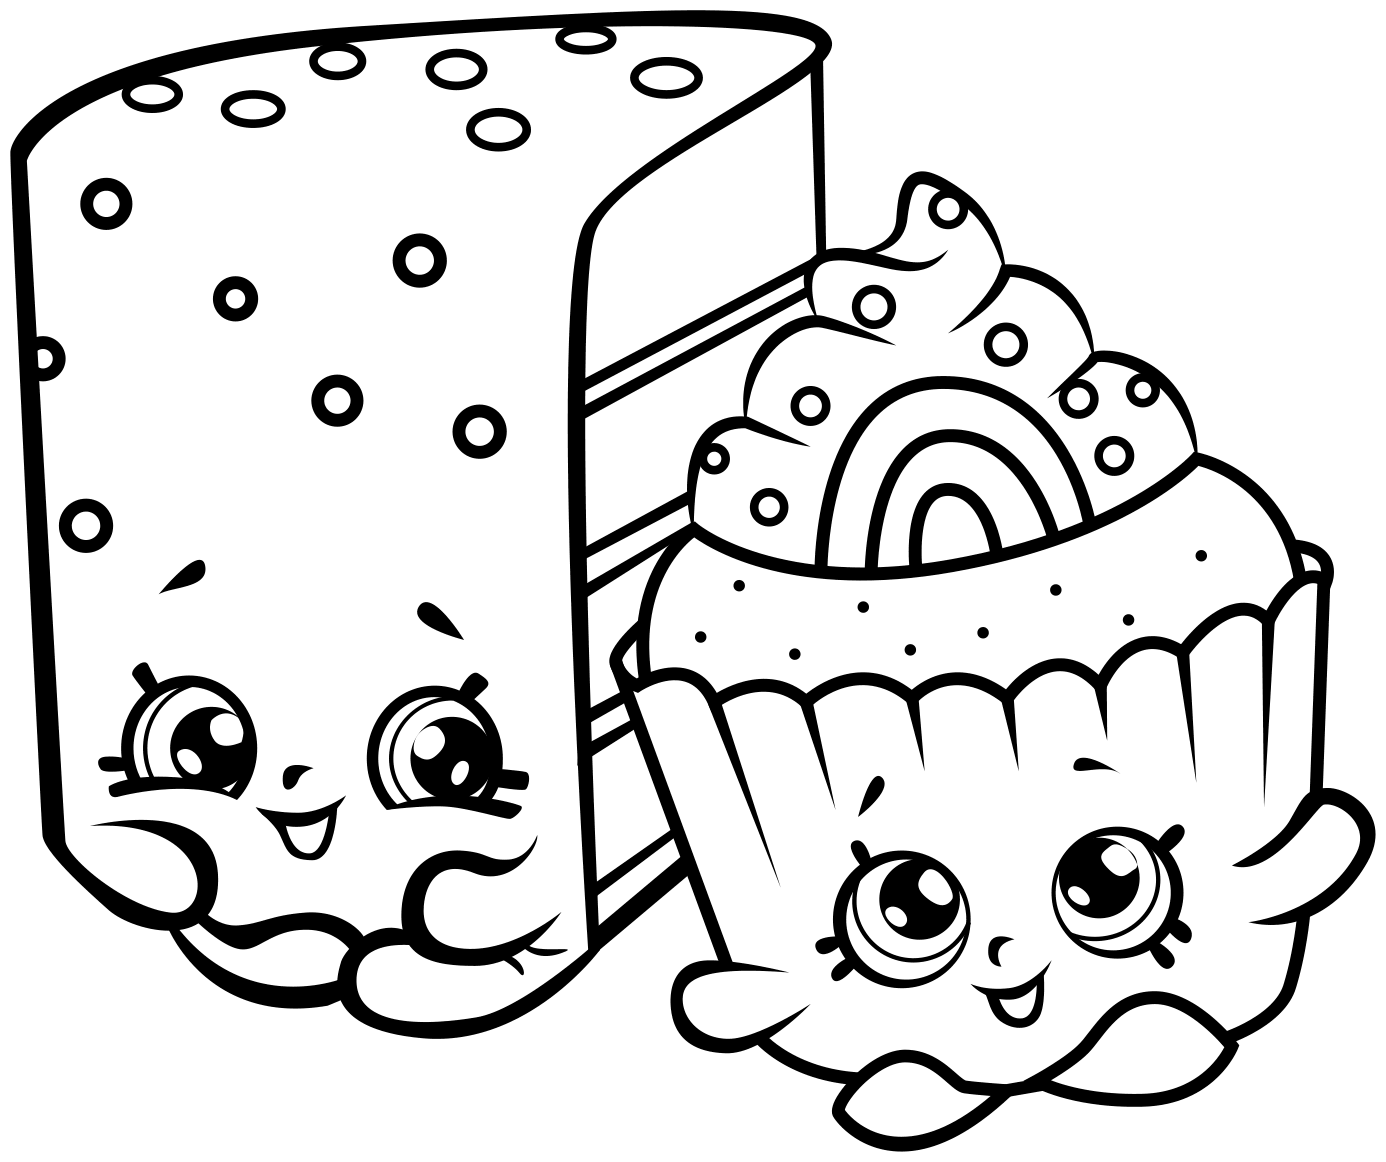 Picture for coloring printable - Shopkins Coloring Pages Printable